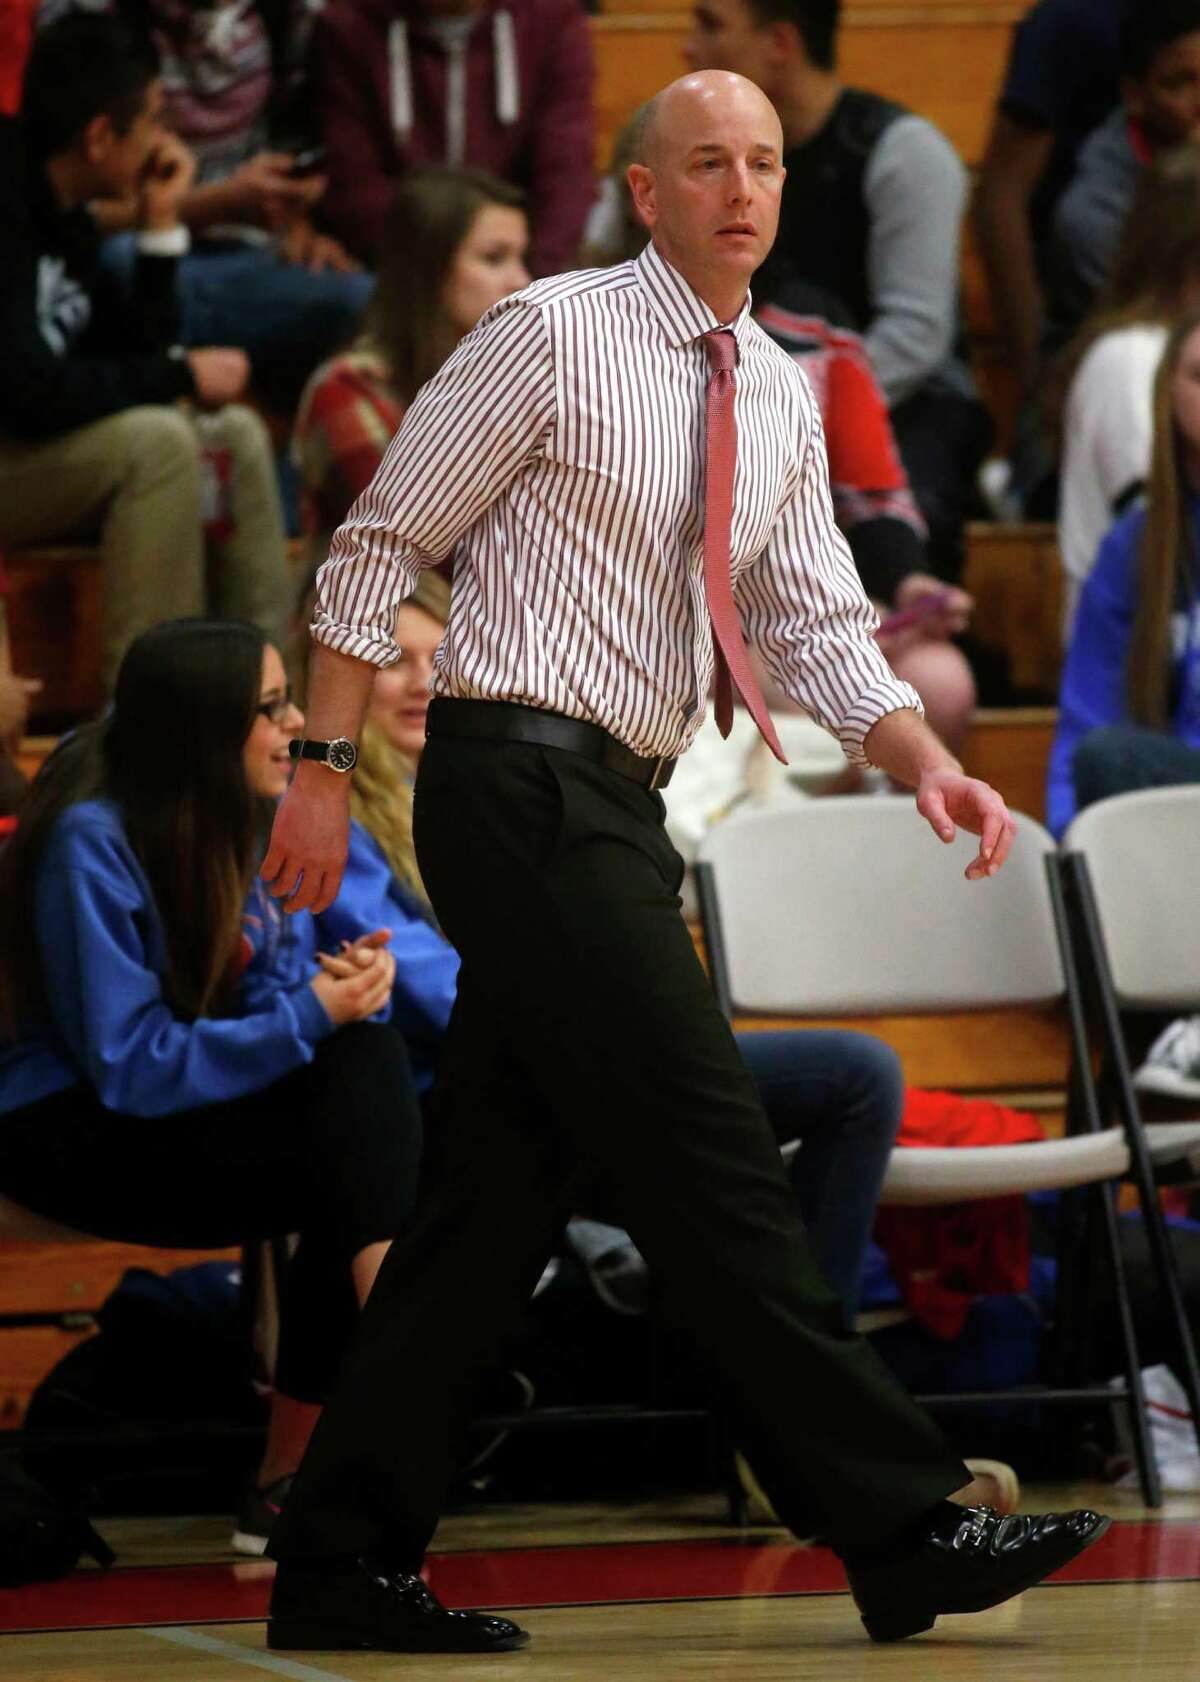 Clear Lake head coach Tommy Penders walks the side of the court during a high school basketball game against Clear Brook on Friday, Jan. 24, 2014, in Friendswood. ( J. Patric Schneider / For the Chronicle )